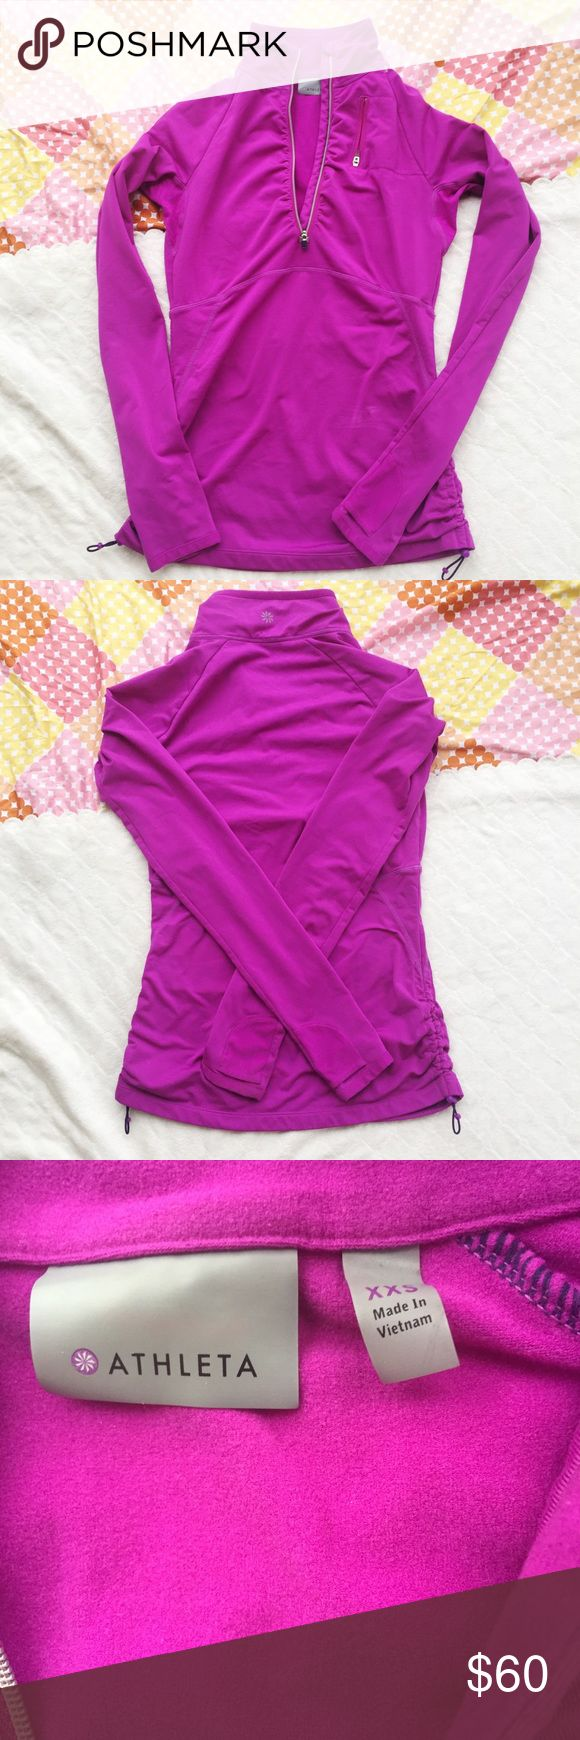 "XXS / Athleta pink half zip athletic jacket Pink half zip athletic pullover. 83% polyester + 17% spandex. Ruched at the side w/ drawstring ties to adjust fit. Has two small pockets at the wrists & a zip pocket near the collar.   SIZE: XXS waist: 14"" sleeve: 27"" length: 29""  ❌ no trades ✔️offers welcome! ❣️add to bundle for **discounted** shipping offer! Athleta Jackets & Coats"